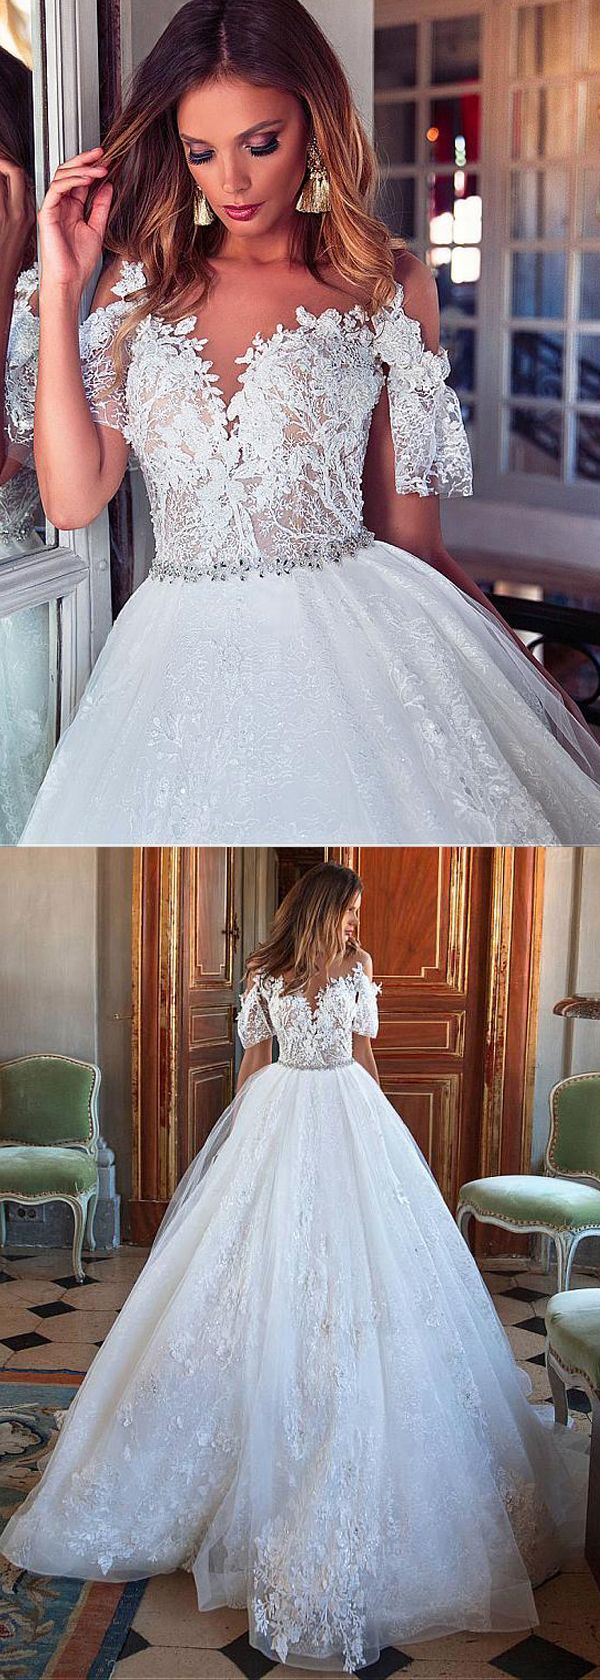 The 991 best Wedding Dresses A-Line images on Pinterest | Lace ...